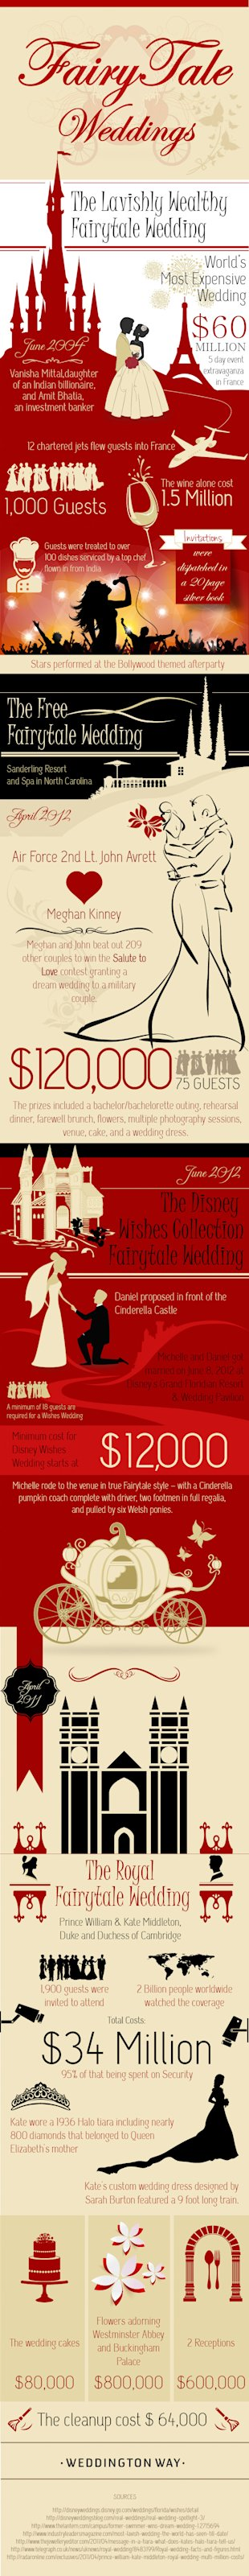 Fabulous Fairy Tale Weddings (Infographic) image 2013 4 22 Fairytale Weddings